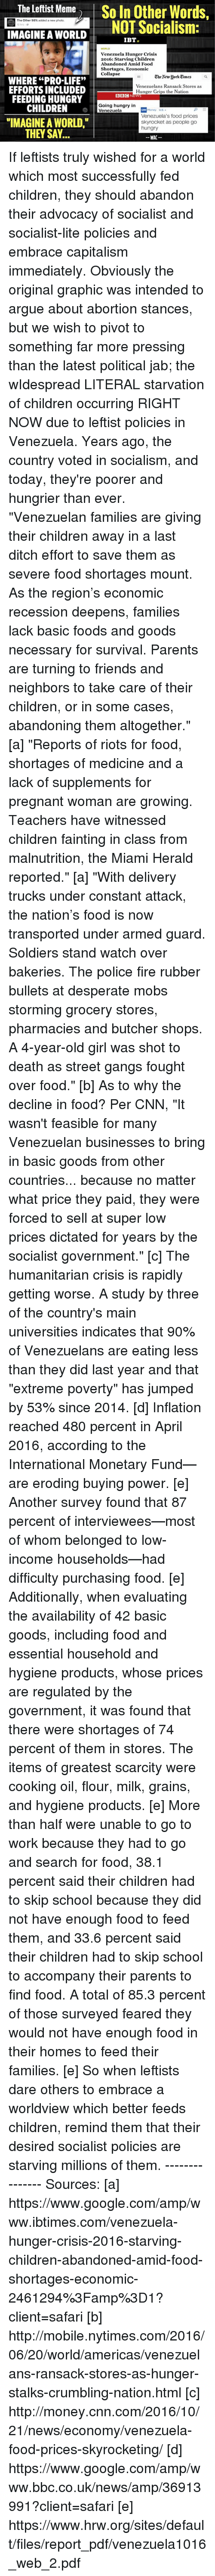 "Dictater: The Leftist Meme  So In Other Words,  The other 98% added a new photo.  NOT Socialism:  IMAGINE A WORLD  IBT.  Venezuela Hunger Crisis  2016: Starving Children  Abandoned Amid Food  Shortages, Economic  Collapse  Elbe Aenvuork Cimes  WHERE ""PRO-LIFE""  Venezuelans Ransack Stores as  EFFORTS INCLUDED  Hunger Grips the Nation  BBC  FEEDING HUNGRY  Going hungry in  CHILDREN  Venezuela  ON Money US.  Venezuela's food prices  ""IMAGINE A WORLD.""  skyrocket as people go  hungry  THEY SAY  WAC If leftists truly wished for a world which most successfully fed children, they should abandon their advocacy of socialist and socialist-lite policies and embrace capitalism immediately. Obviously the original graphic was intended to argue about abortion stances, but we wish to pivot to something far more pressing than the latest political jab; the wIdespread LITERAL starvation of children occurring RIGHT NOW due to leftist policies in Venezuela. Years ago, the country voted in socialism, and today, they're poorer and hungrier than ever.   ""Venezuelan families are giving their children away in a last ditch effort to save them as severe food shortages mount. As the region's economic recession deepens, families lack basic foods and goods necessary for survival. Parents are turning to friends and neighbors to take care of their children, or in some cases, abandoning them altogether."" [a]  ""Reports of riots for food, shortages of medicine and a lack of supplements for pregnant woman are growing. Teachers have witnessed children fainting in class from malnutrition, the Miami Herald reported."" [a]  ""With delivery trucks under constant attack, the nation's food is now transported under armed guard. Soldiers stand watch over bakeries. The police fire rubber bullets at desperate mobs storming grocery stores, pharmacies and butcher shops. A 4-year-old girl was shot to death as street gangs fought over food."" [b]  As to why the decline in food? Per CNN, ""It wasn't feasible for many Venezuelan businesses to bring in basic goods from other countries... because no matter what price they paid, they were forced to sell at super low prices dictated for years by the socialist government."" [c]  The humanitarian crisis is rapidly getting worse. A study by three of the country's main universities indicates that 90% of Venezuelans are eating less than they did last year and that ""extreme poverty"" has jumped by 53% since 2014. [d] Inflation reached 480 percent in April 2016, according to the International Monetary Fund— are eroding buying power. [e] Another survey found that 87 percent of interviewees—most of whom belonged to low-income households—had difficulty purchasing food. [e] Additionally, when evaluating the availability of 42 basic goods, including food and essential household and hygiene products, whose prices are regulated by the government, it was found that there were shortages of 74 percent of them in stores. The items of greatest scarcity were cooking oil, flour, milk, grains, and hygiene products. [e] More than half were unable to go to work because they had to go and search for food, 38.1 percent said their children had to skip school because they did not have enough food to feed them, and 33.6 percent said their children had to skip school to accompany their parents to find food. A total of 85.3 percent of those surveyed feared they would not have enough food in their homes to feed their families. [e]  So when leftists dare others to embrace a worldview which better feeds children, remind them that their desired socialist policies are starving millions of them.  --------------- Sources: [a] https://www.google.com/amp/www.ibtimes.com/venezuela-hunger-crisis-2016-starving-children-abandoned-amid-food-shortages-economic-2461294%3Famp%3D1?client=safari  [b] http://mobile.nytimes.com/2016/06/20/world/americas/venezuelans-ransack-stores-as-hunger-stalks-crumbling-nation.html  [c] http://money.cnn.com/2016/10/21/news/economy/venezuela-food-prices-skyrocketing/  [d] https://www.google.com/amp/www.bbc.co.uk/news/amp/36913991?client=safari  [e] https://www.hrw.org/sites/default/files/report_pdf/venezuela1016_web_2.pdf"